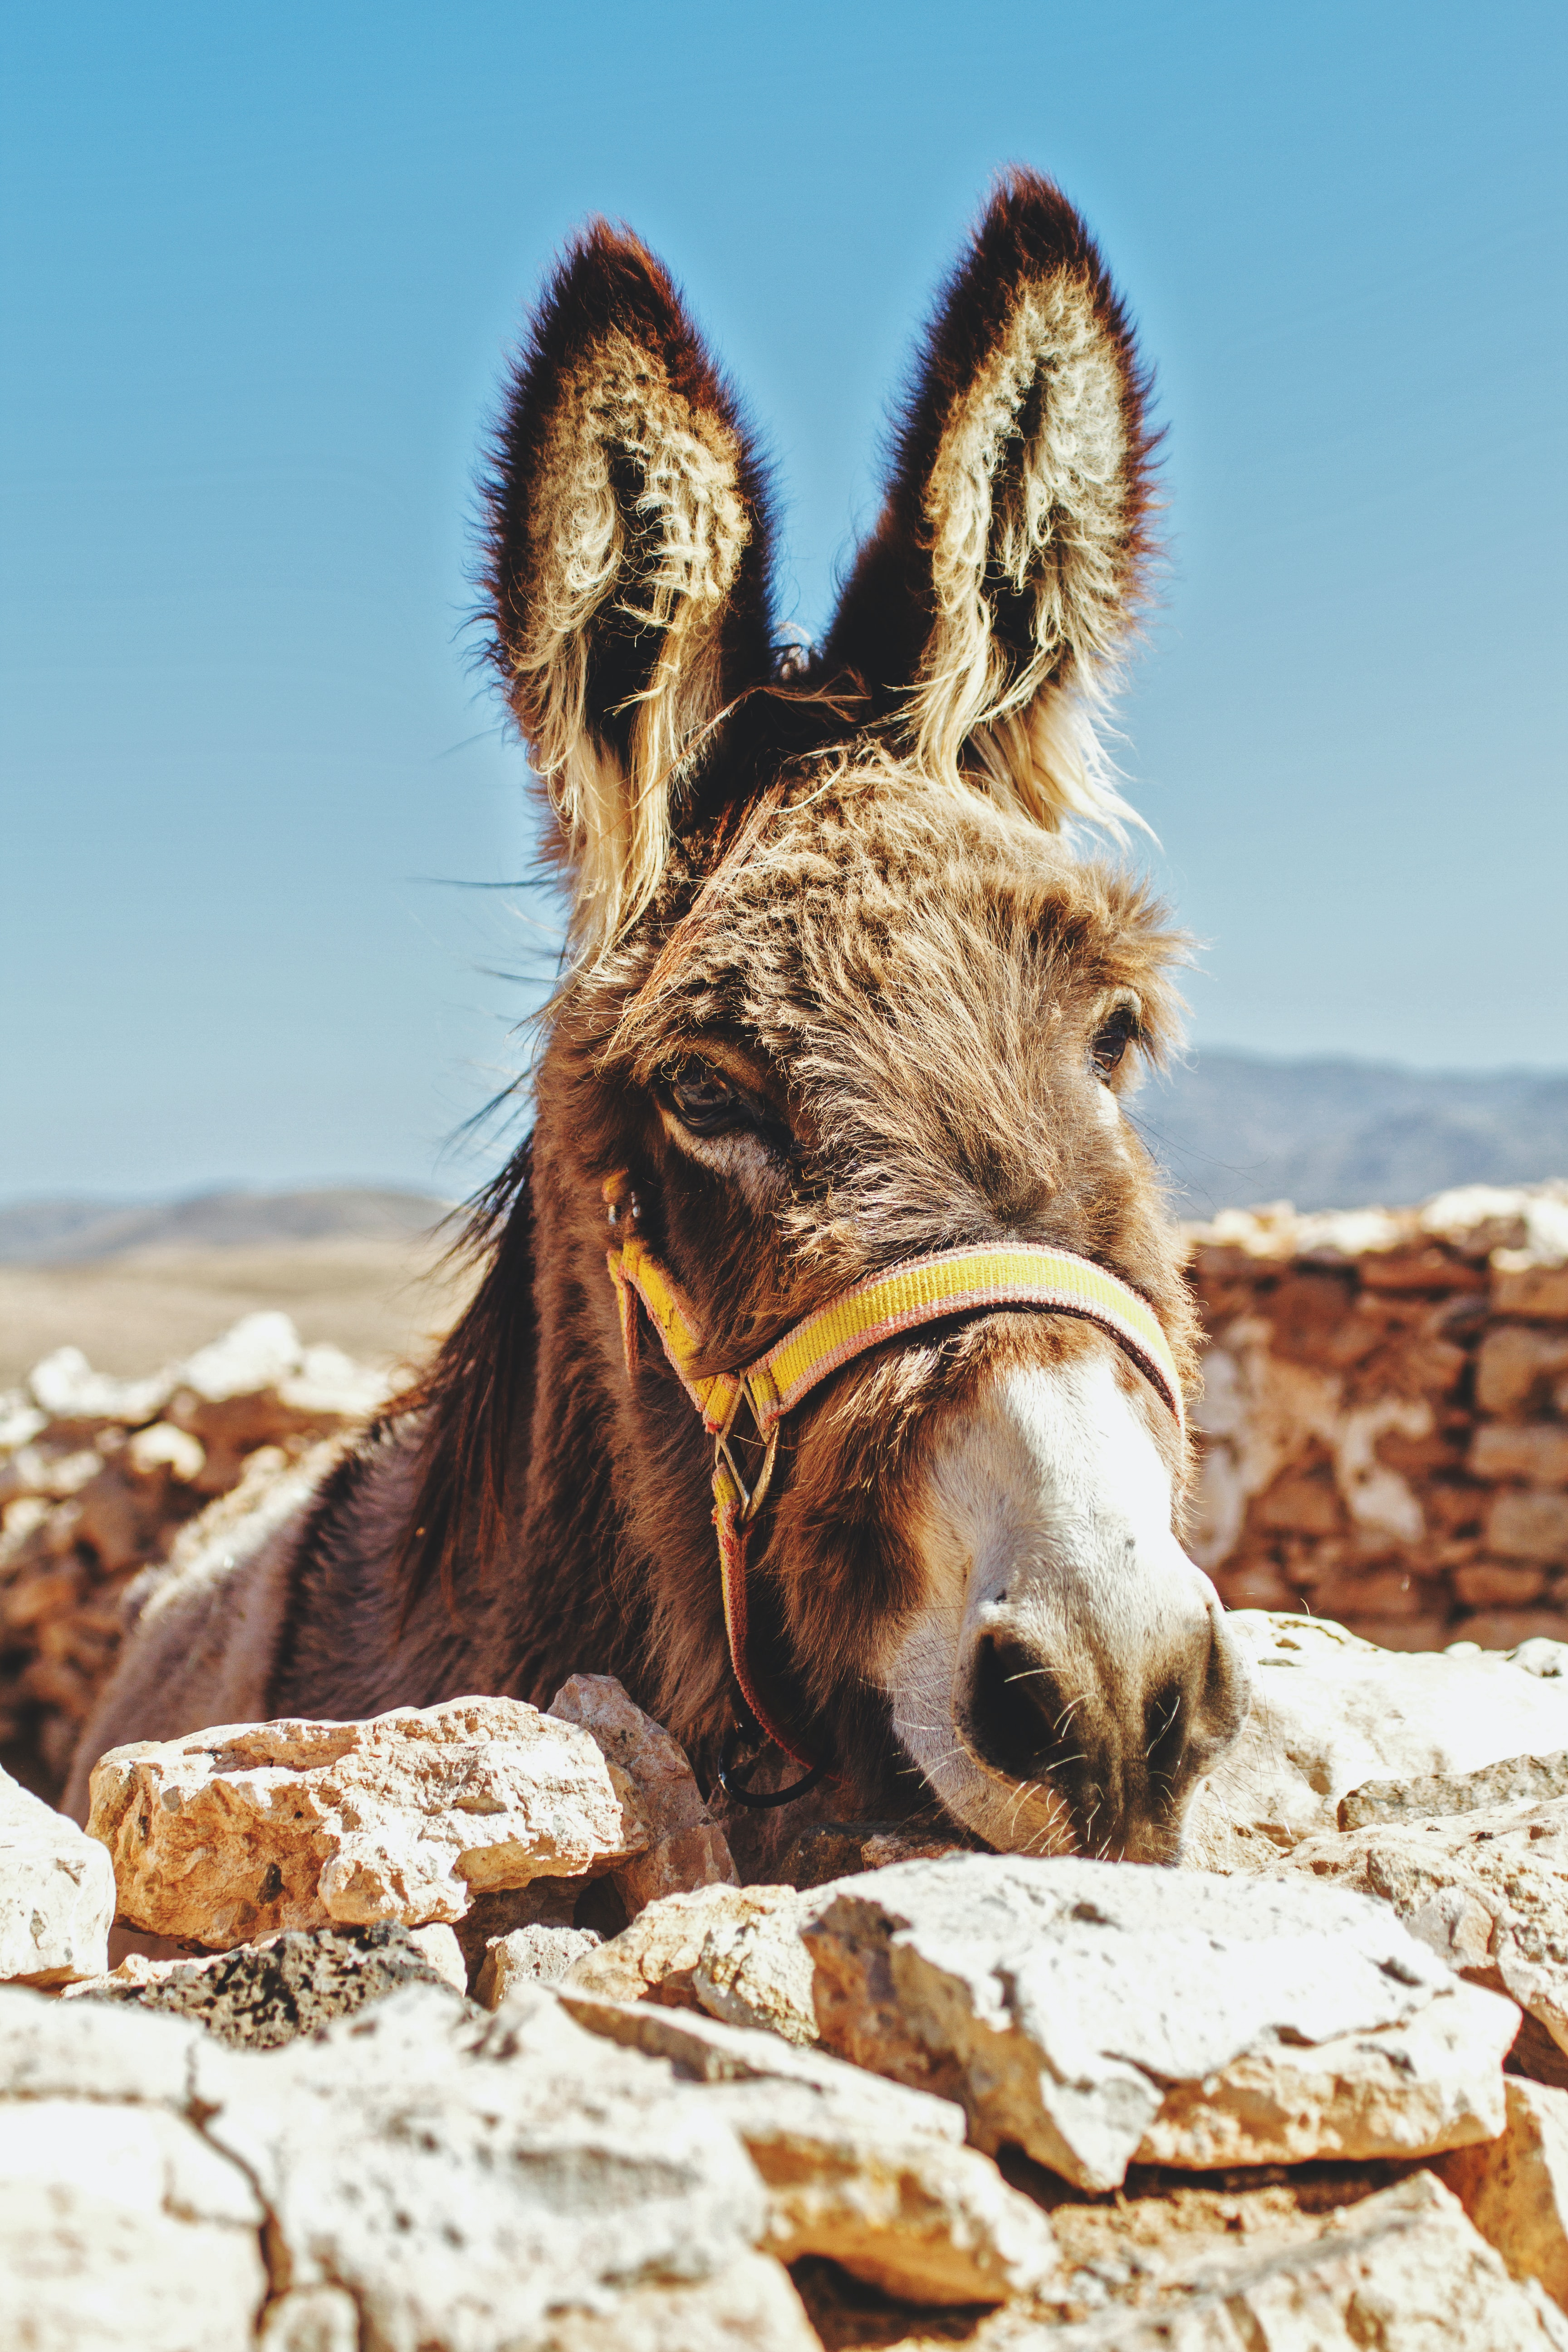 The Donkey and the Elephant stories